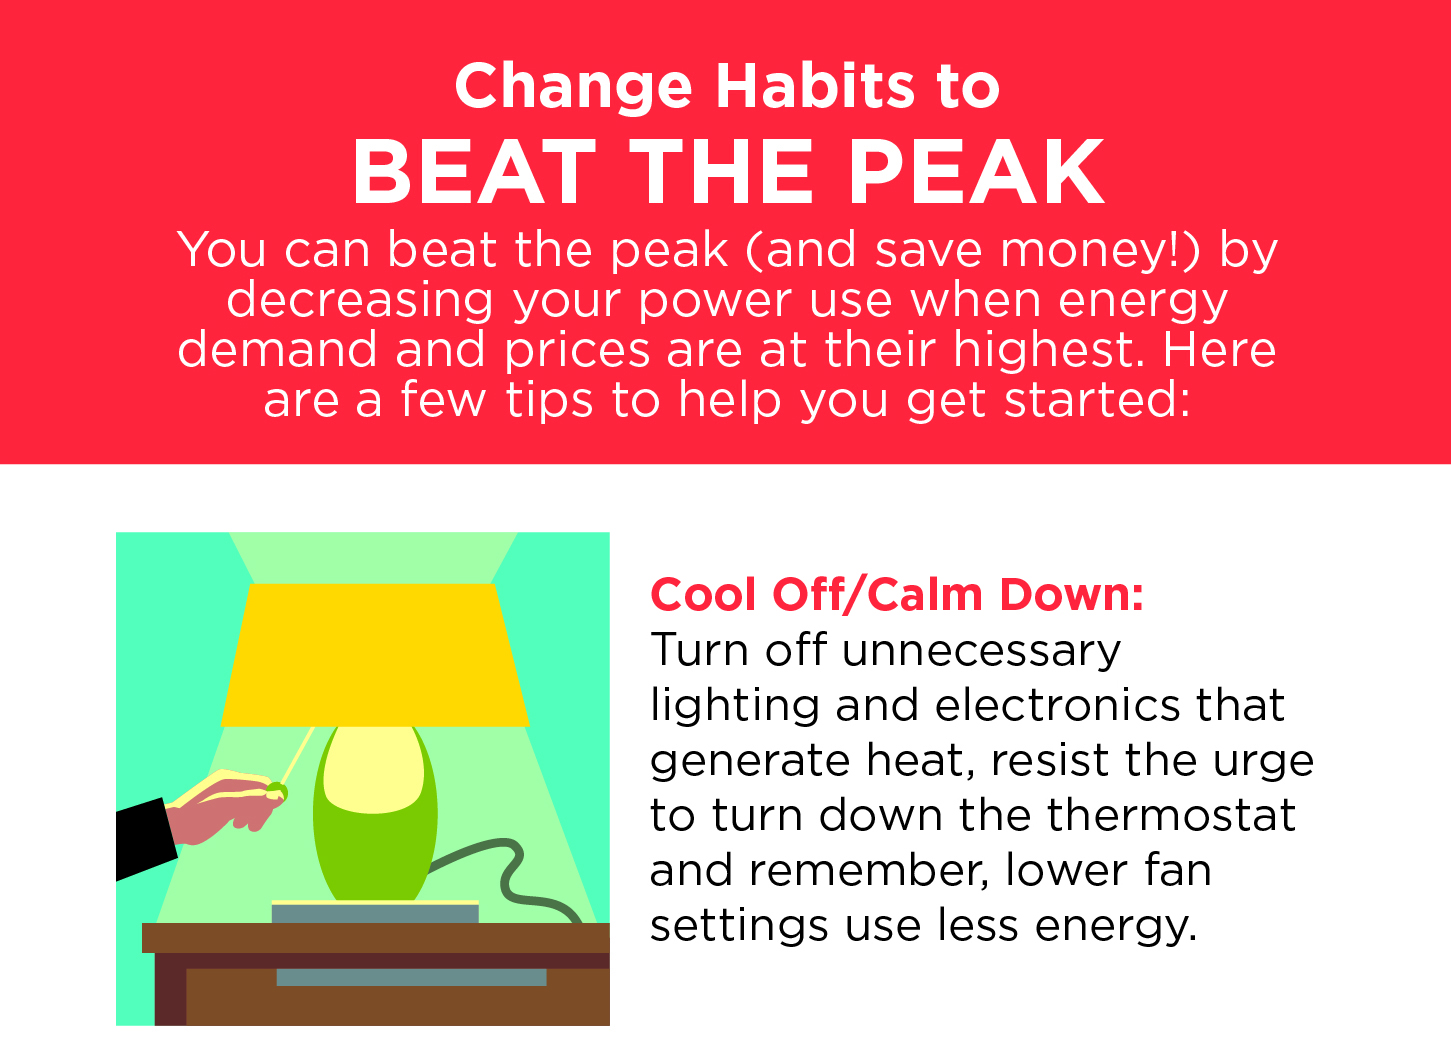 Turn off lights to save energy